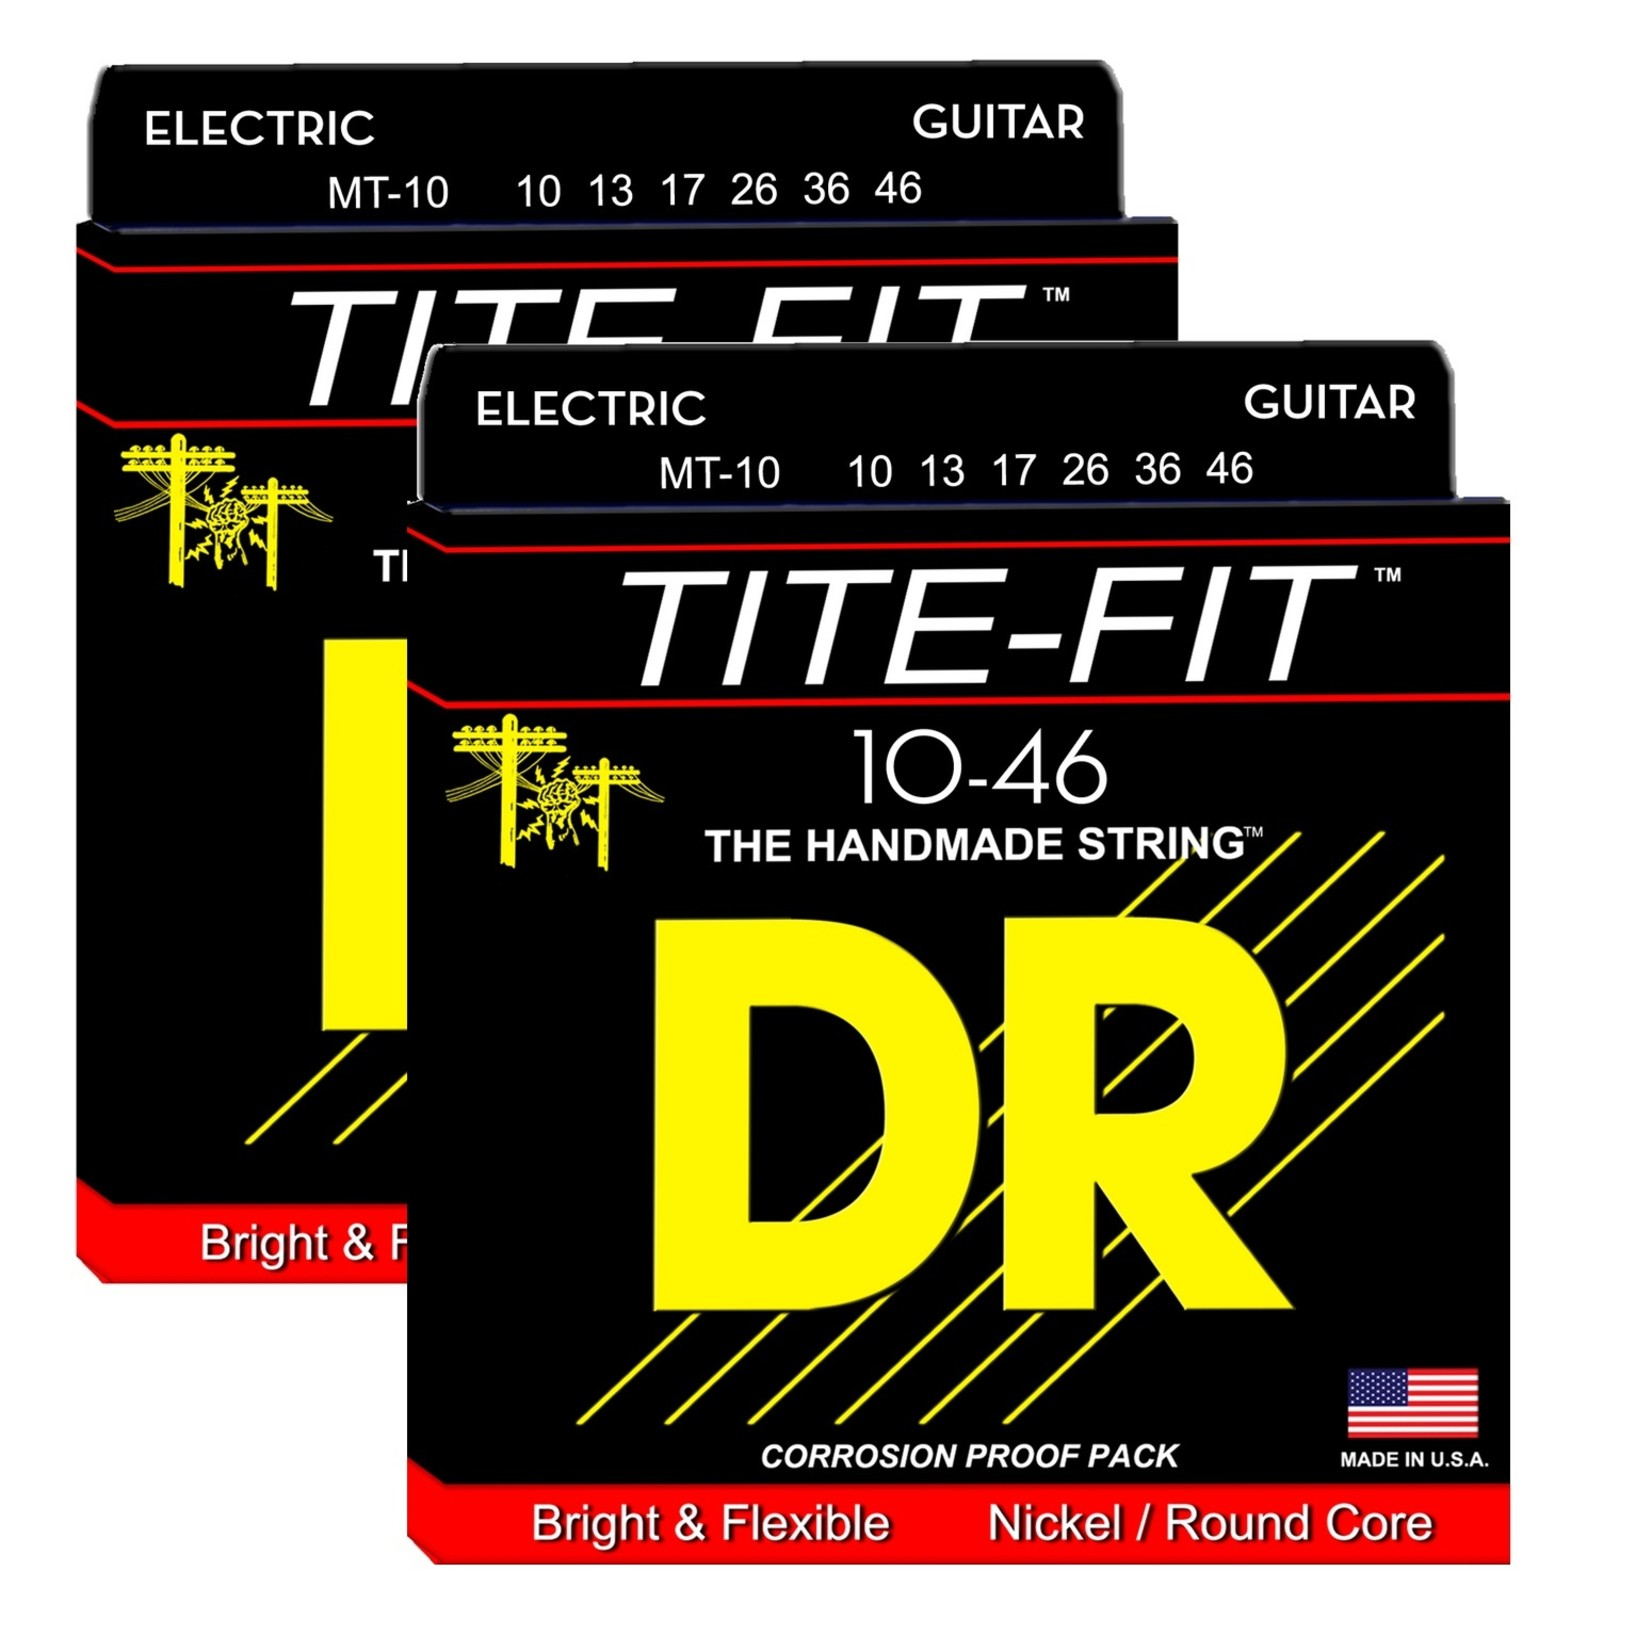 DR Strings 2x DR Strings MT-10 Tite-Fitª Electric Guitar Strings (10-46) - Nickel Plated on Round Cores